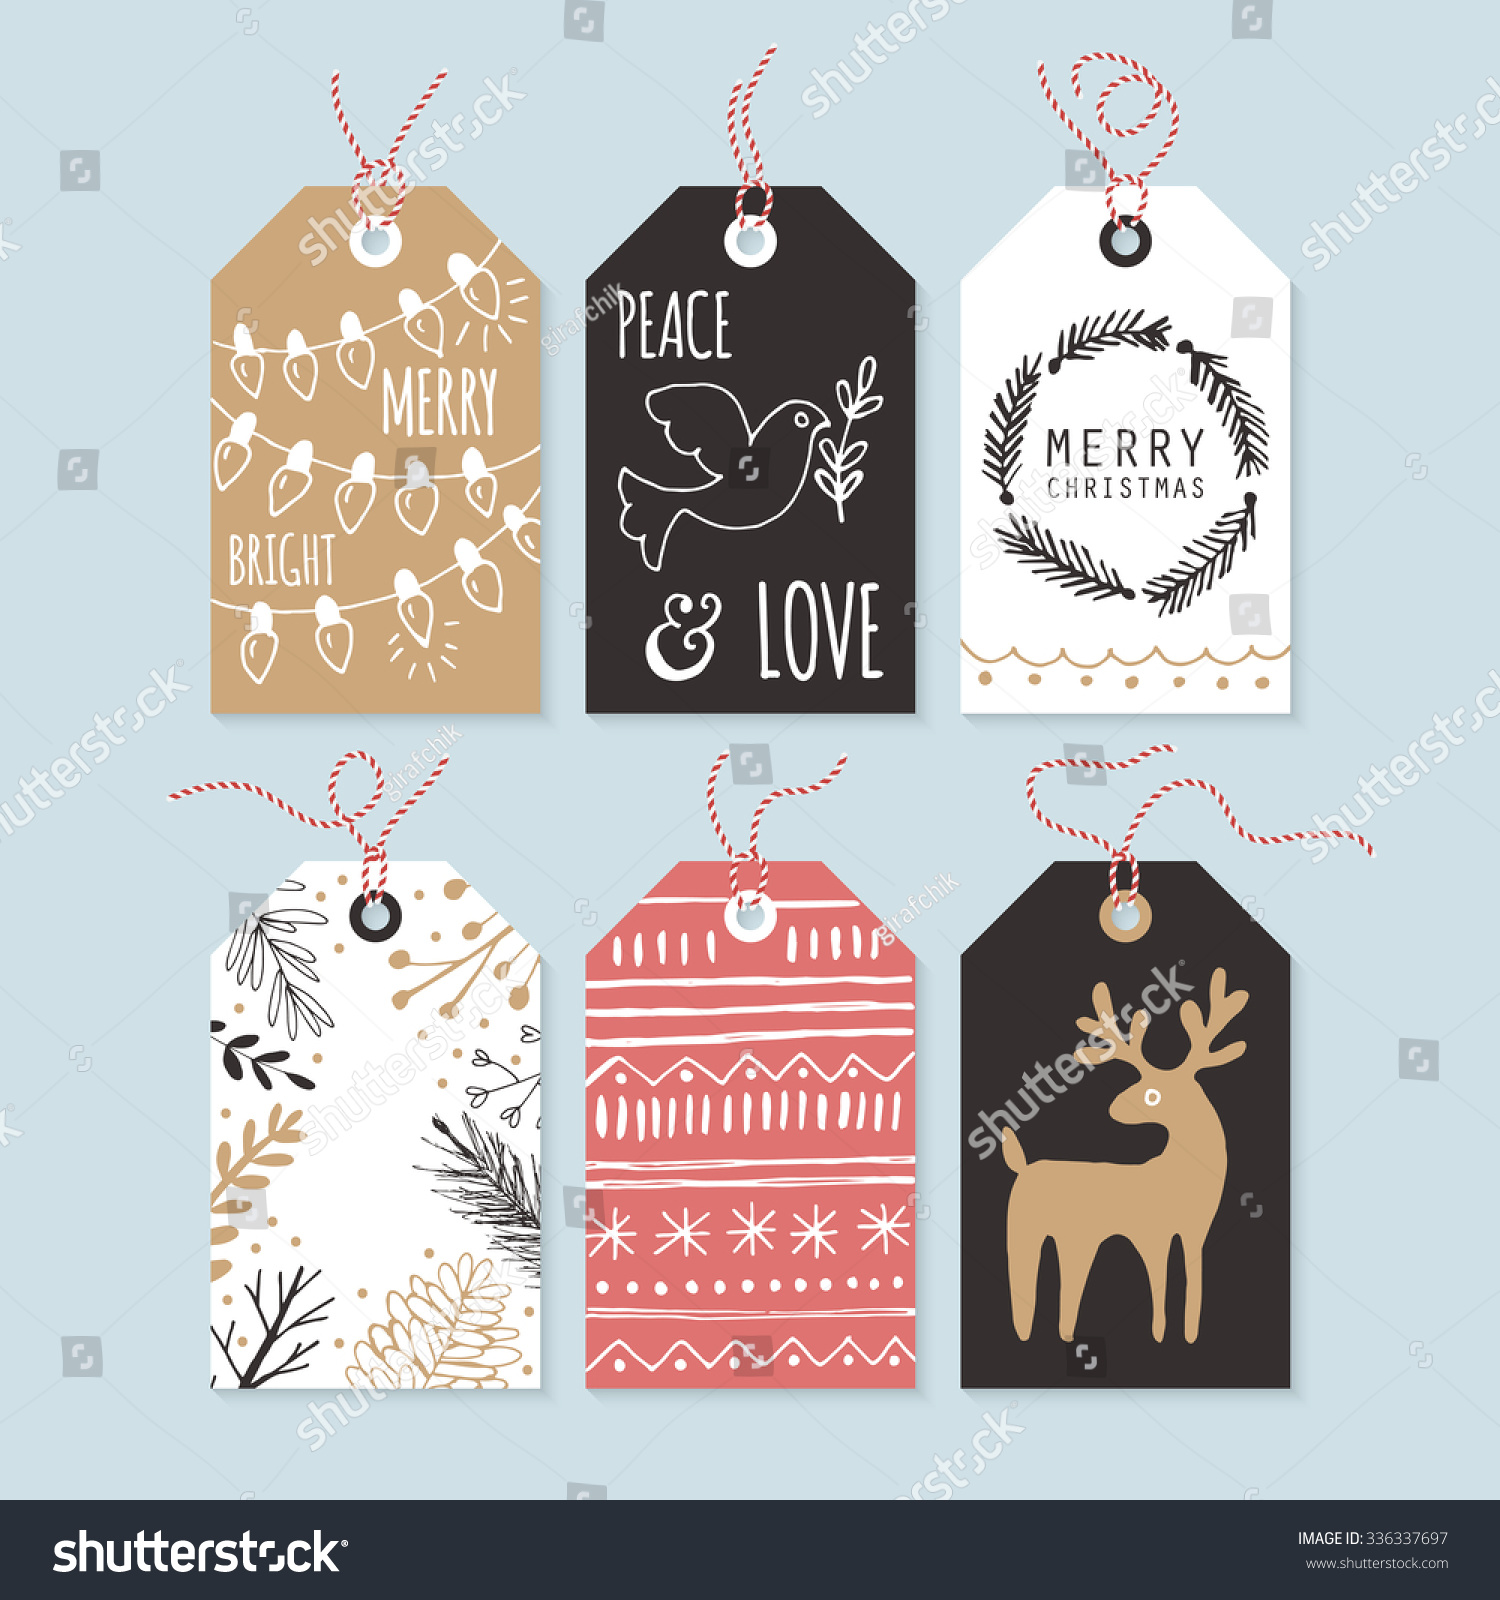 Modern christmas gift tags hand drawing stock vector 336337697 modern christmas gift tags with hand drawing elements vector illustration negle Image collections